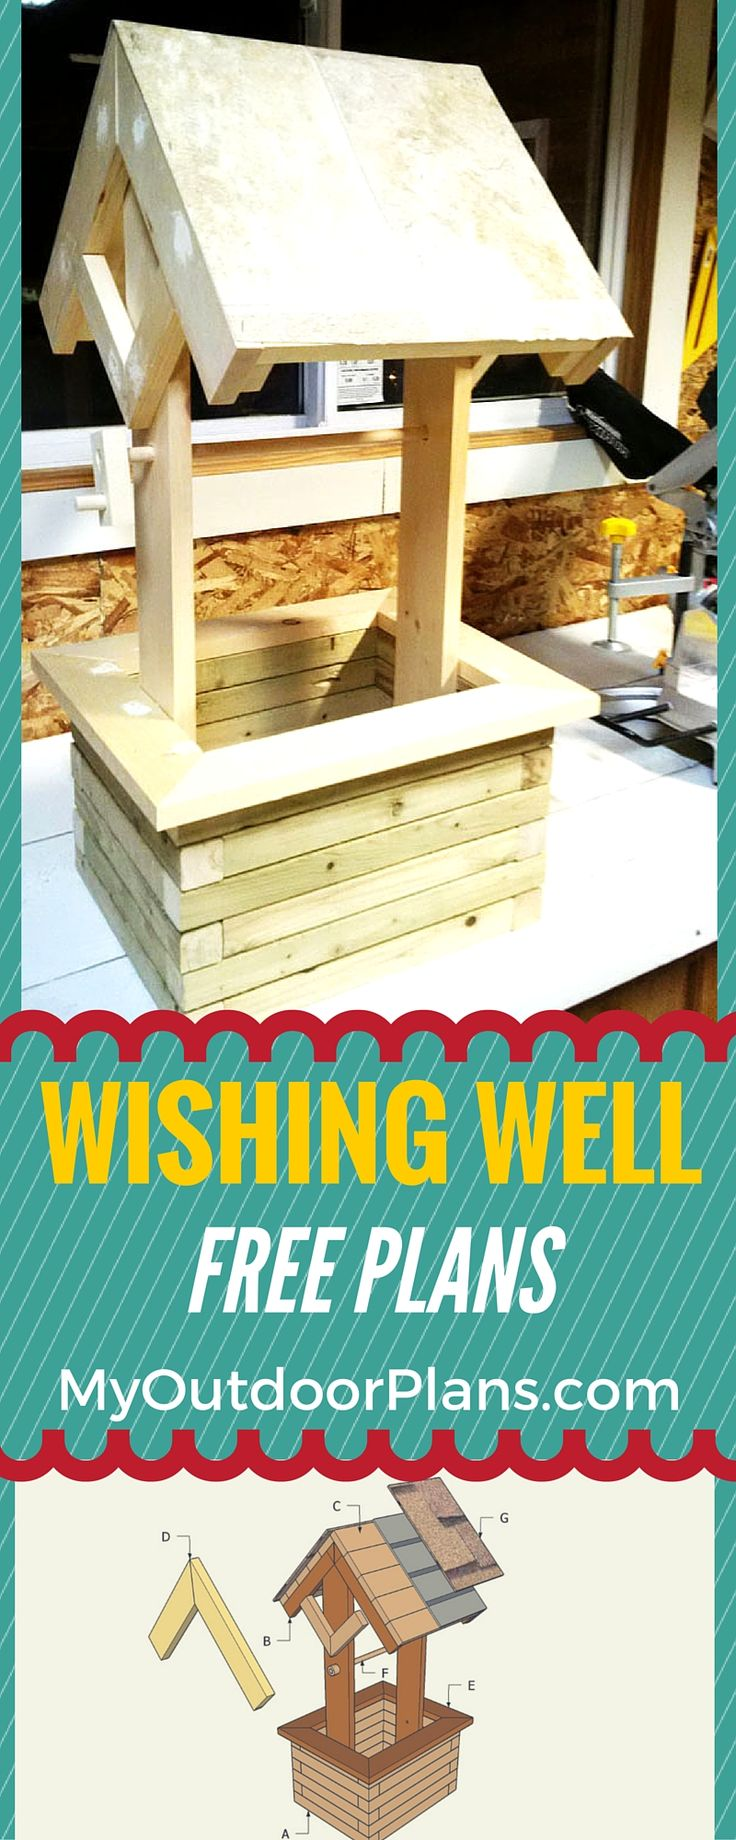 Garden designs with bridges and wishing wells landscaping ideas - How To Build A Wishing Well Planter Free Plans For You To Build A Mini